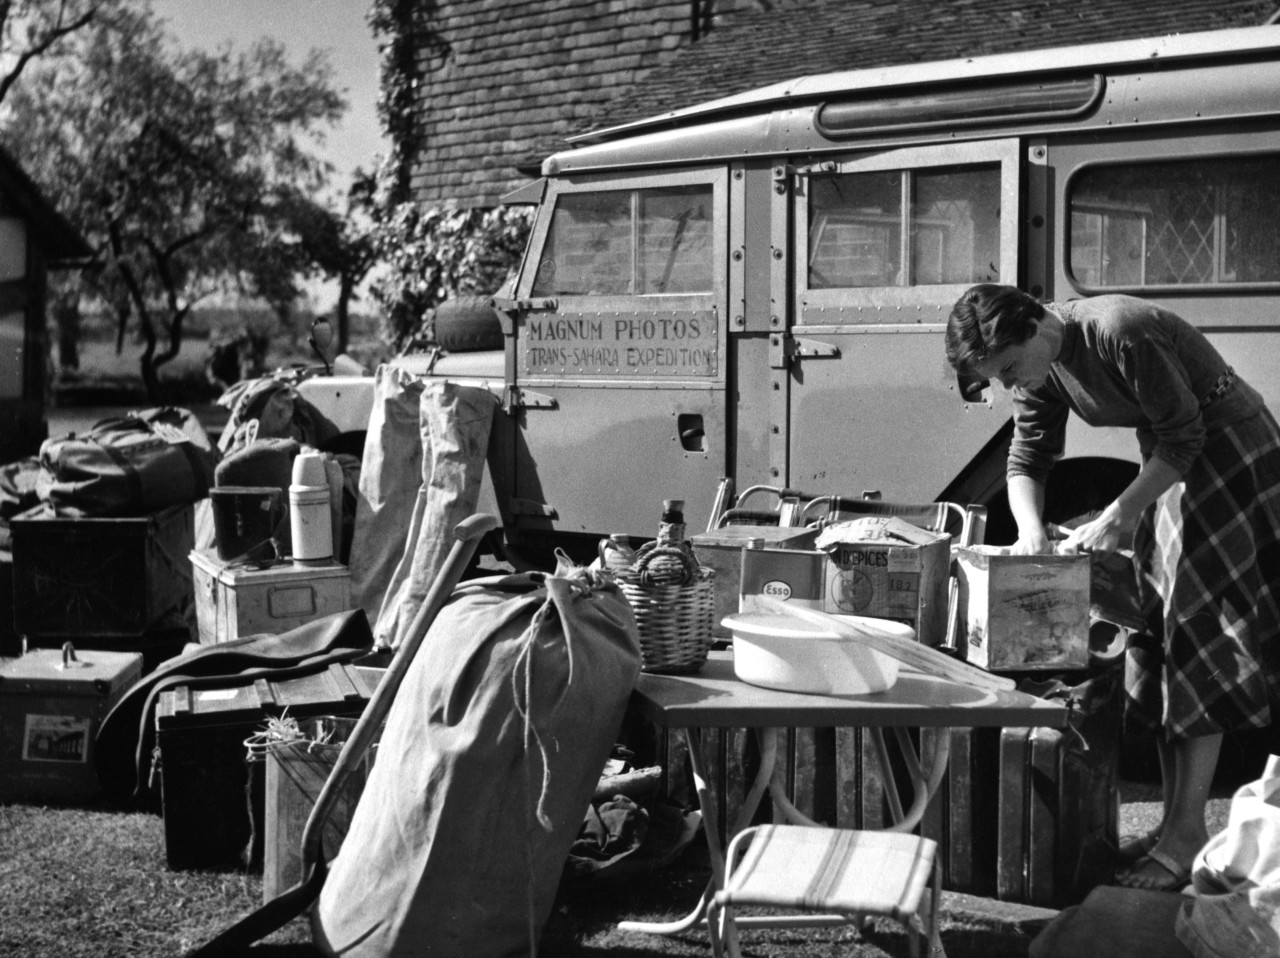 GB. England. Kent. 1957. Jinx Rodger preparing the Land Rover for the Trans-Sahara Expedition.